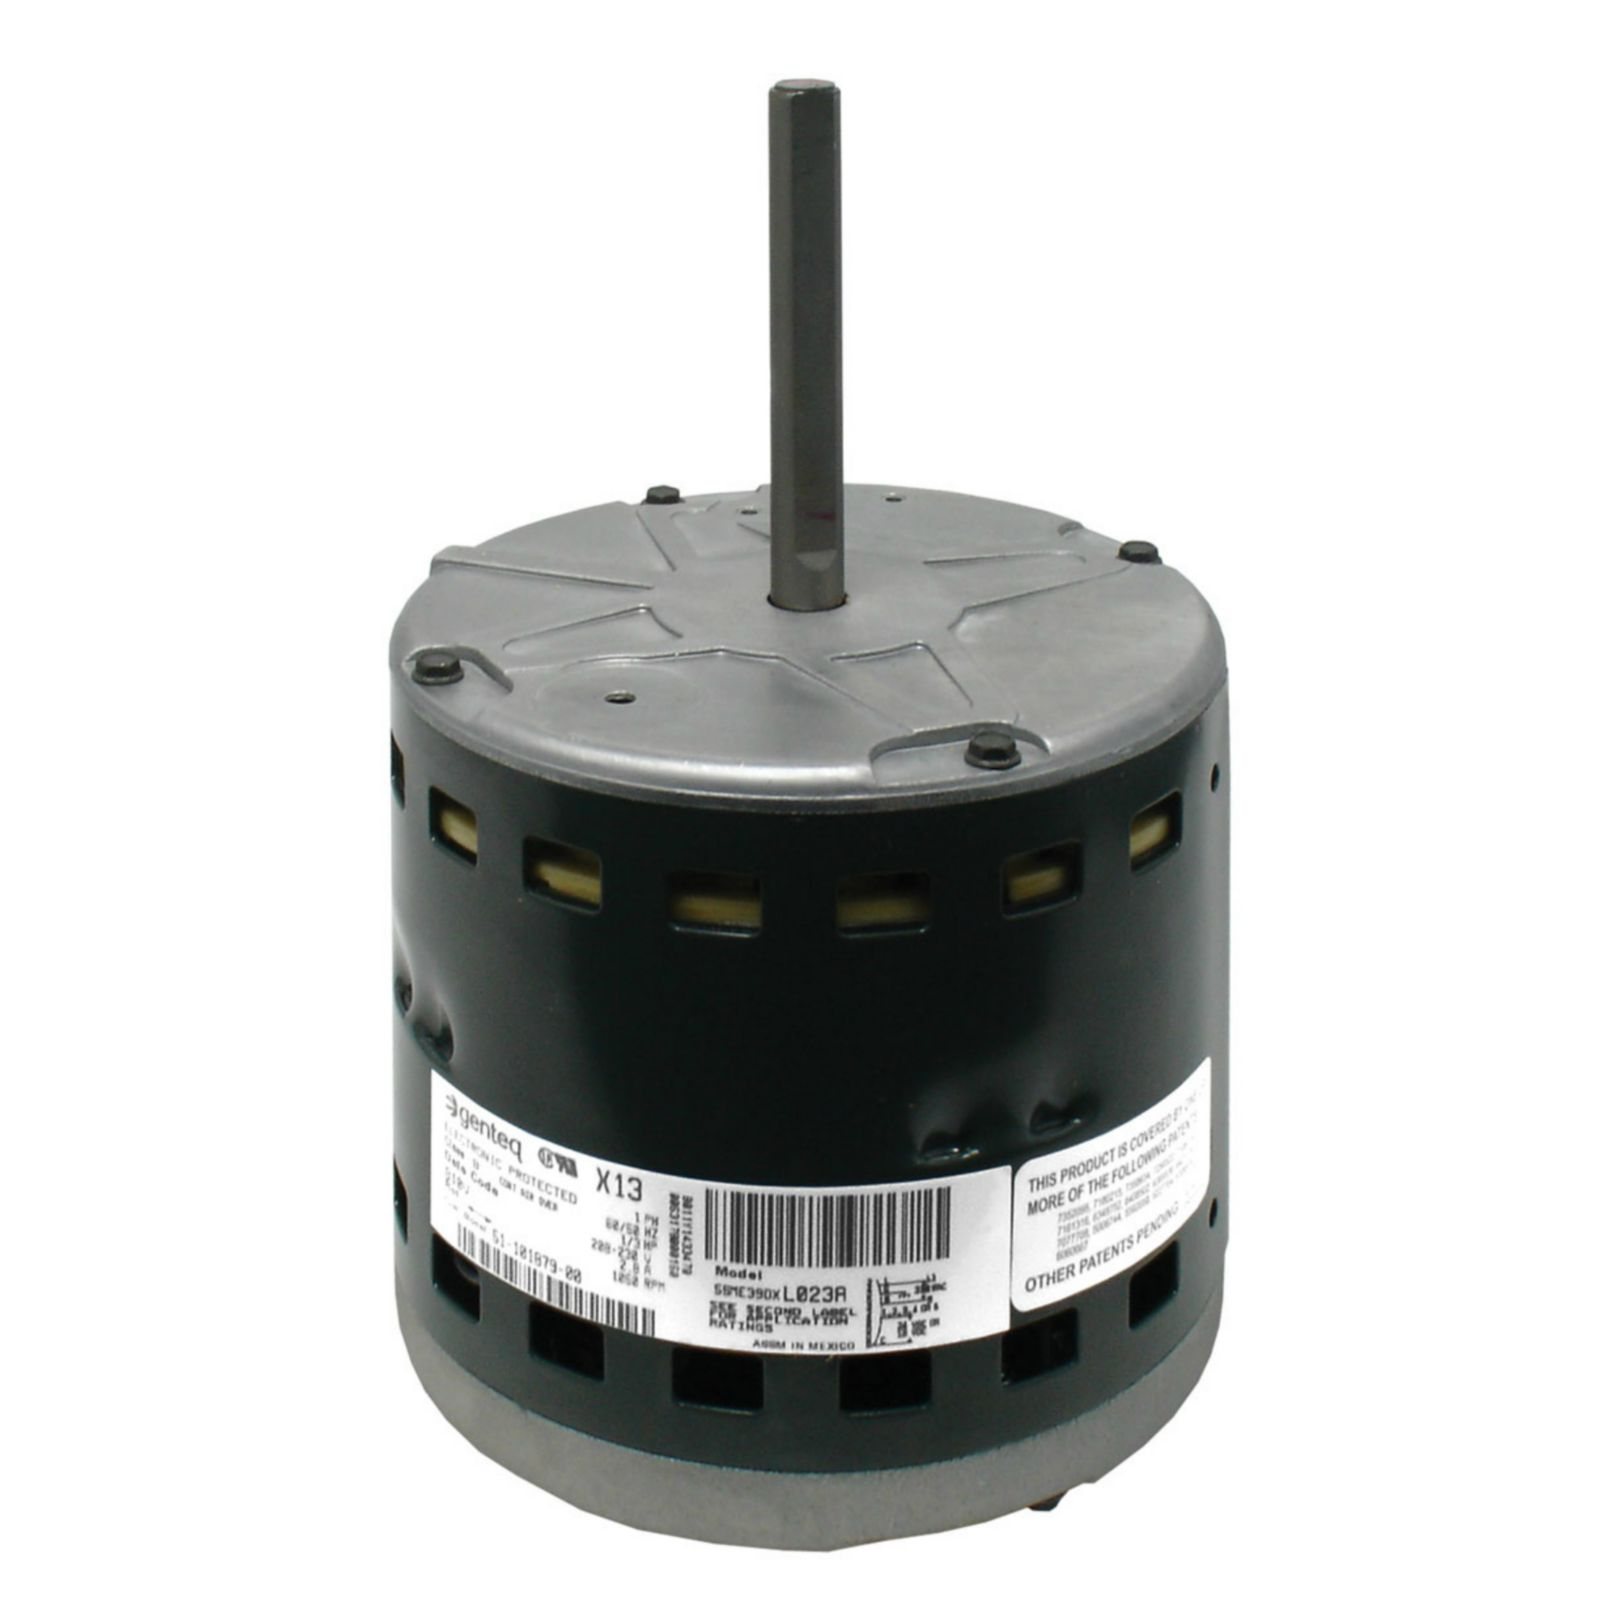 genteq 51 101879 00 motor and module x 13 230v 1 3 hp view full size in new tab